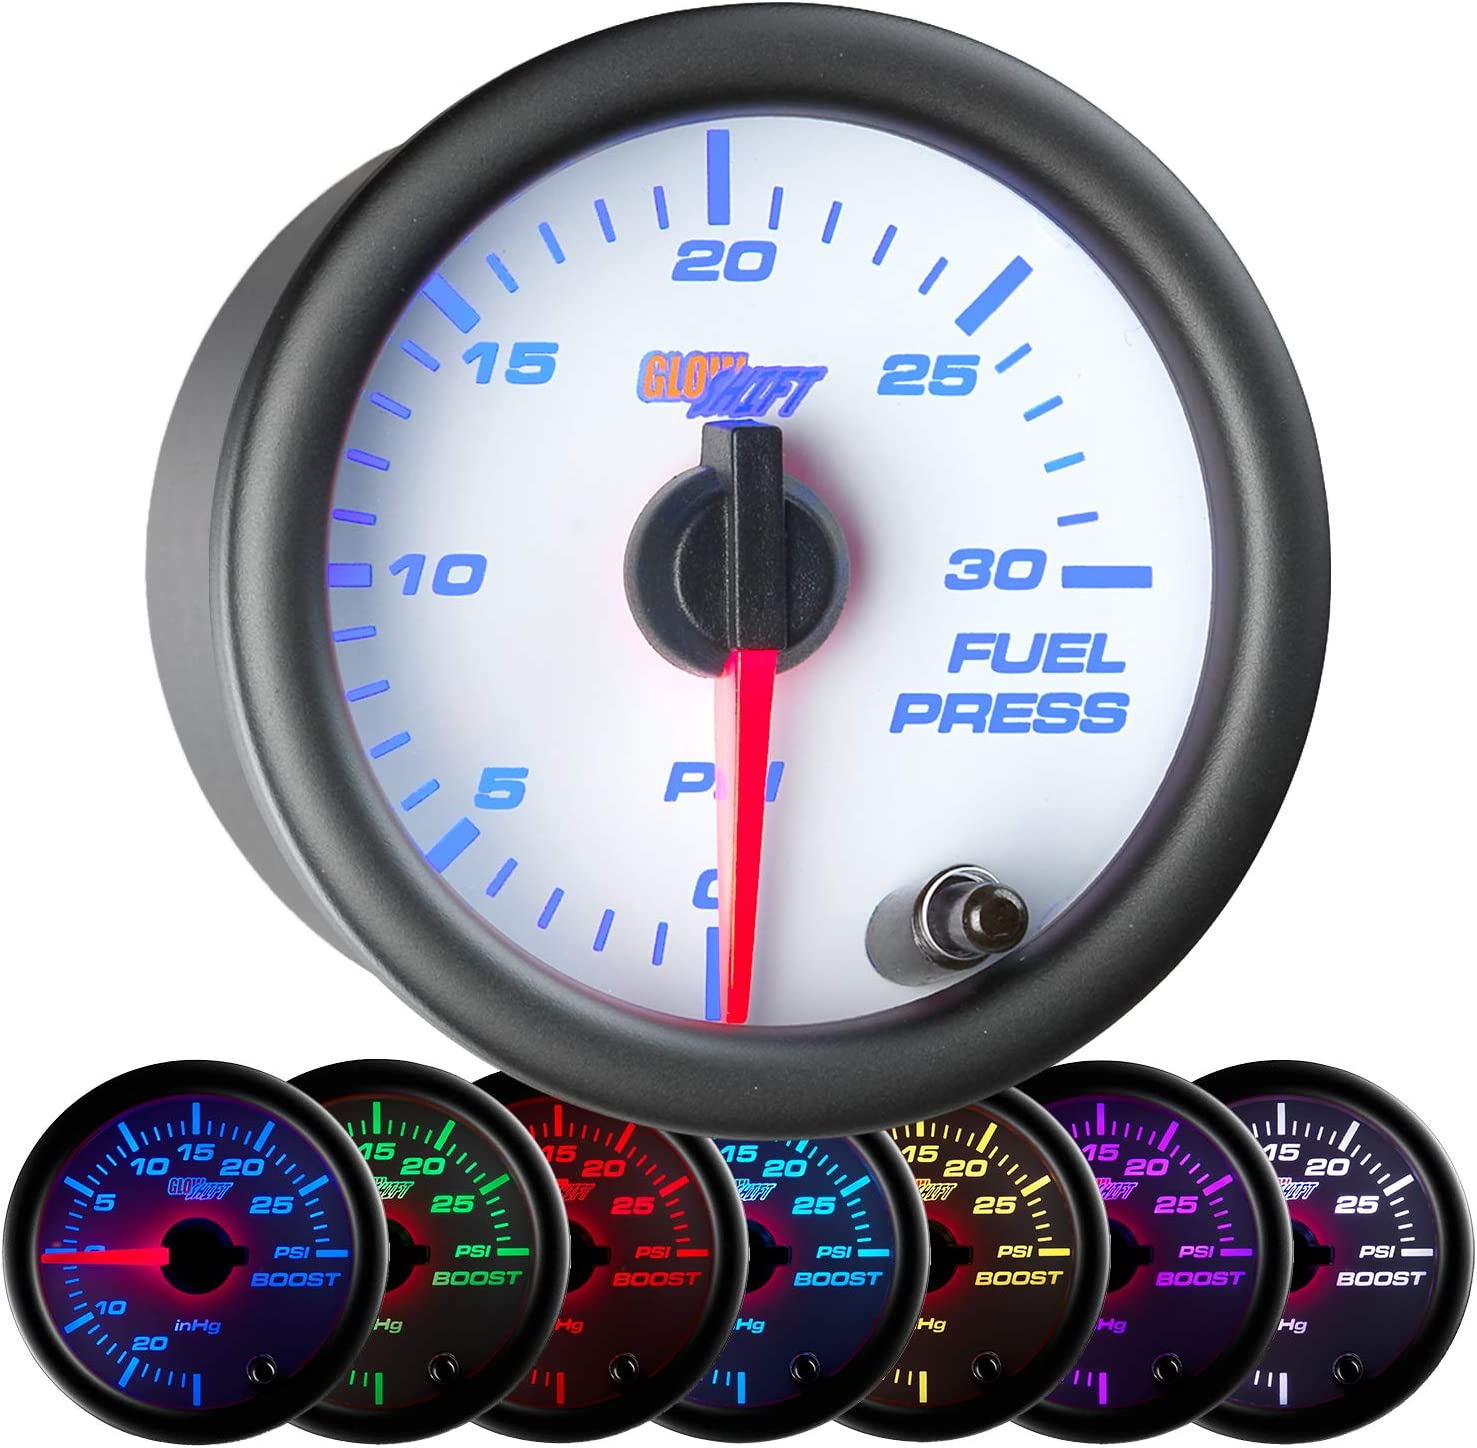 "GlowShift White 7 Color 30 PSI Fuel Pressure Gauge Kit - Includes Electronic Sensor - White Dial - Clear Lens - for Diesel Trucks - 2-1/16"" 52mm"